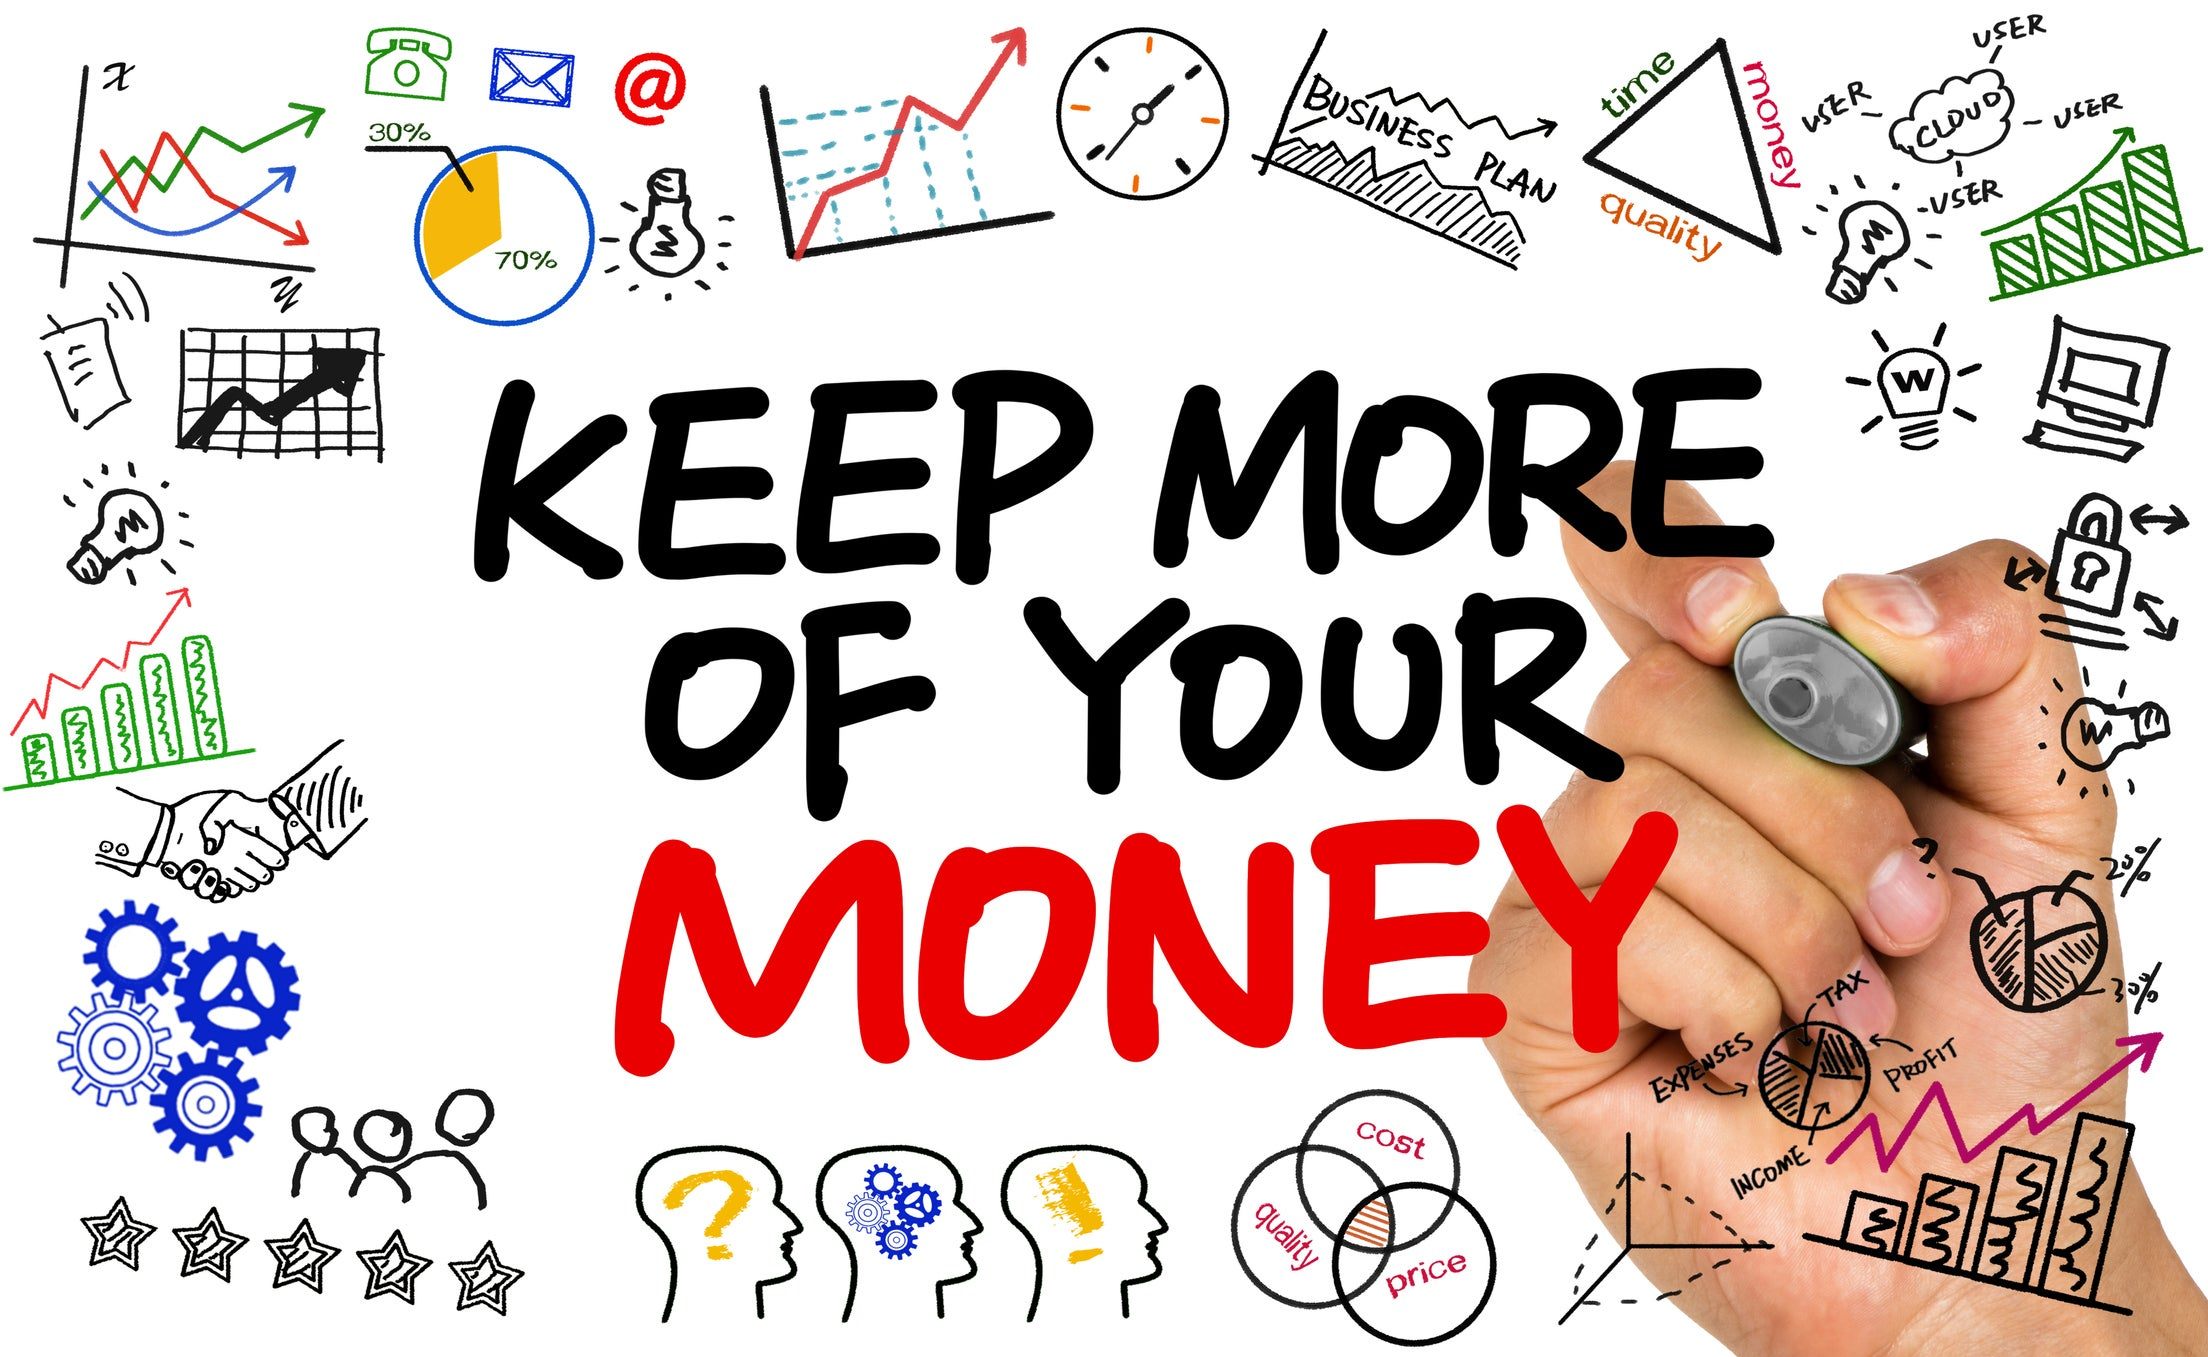 7 Simple Tricks for Saving More Money | The Motley Fool